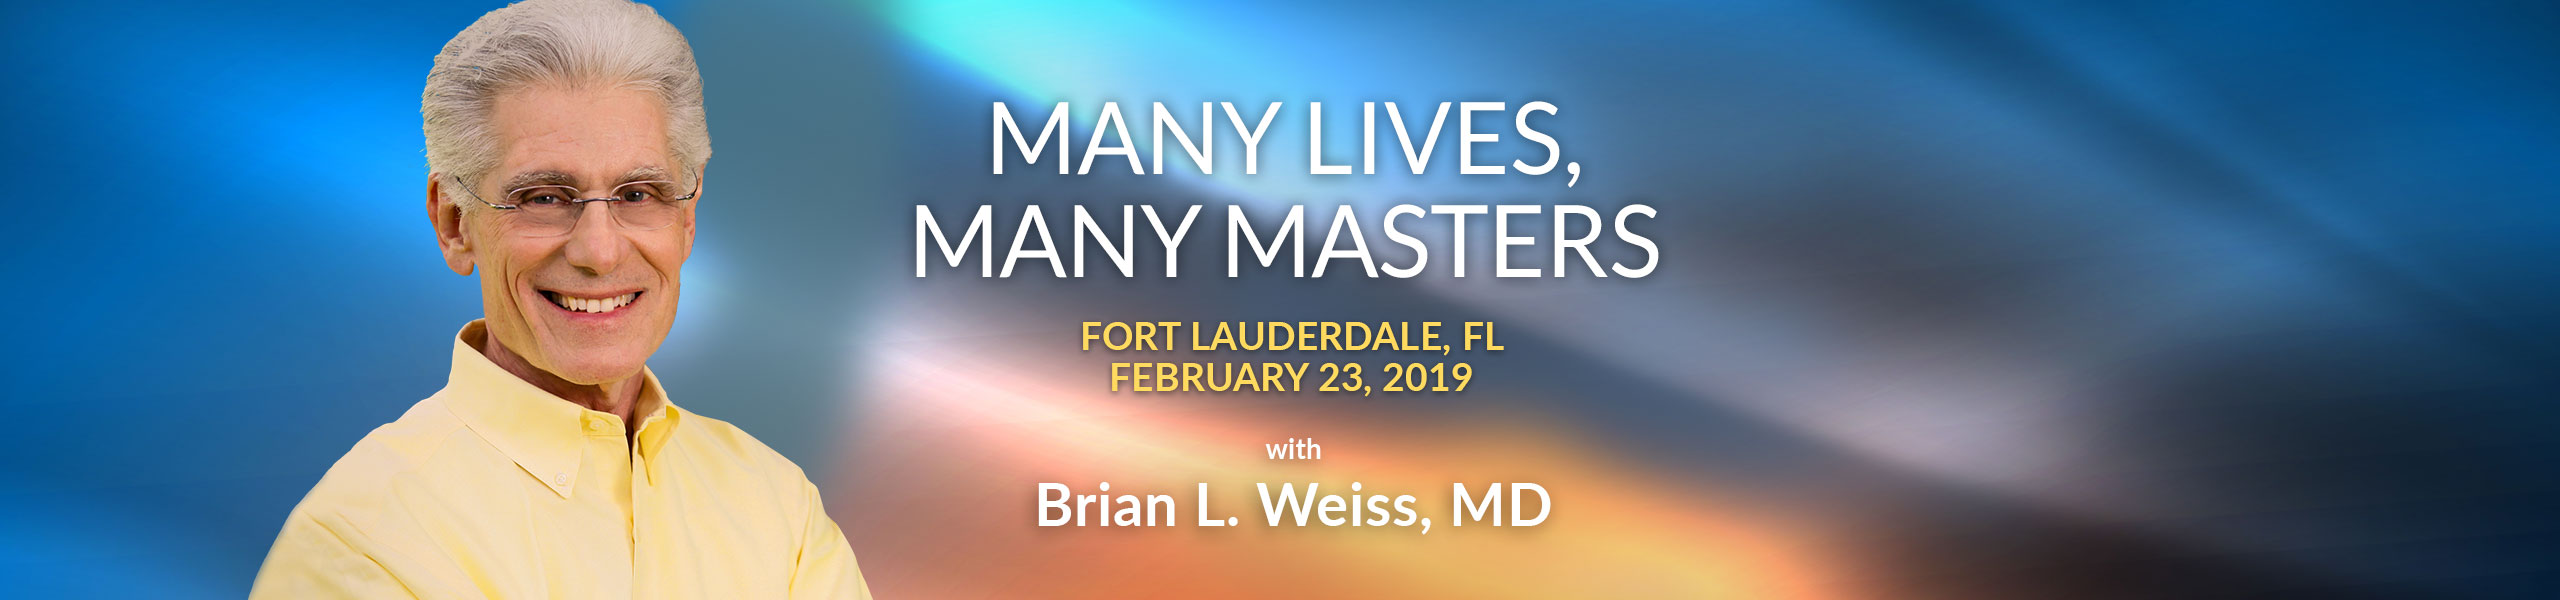 Many Lives, Many Masters - Fort Lauderdale